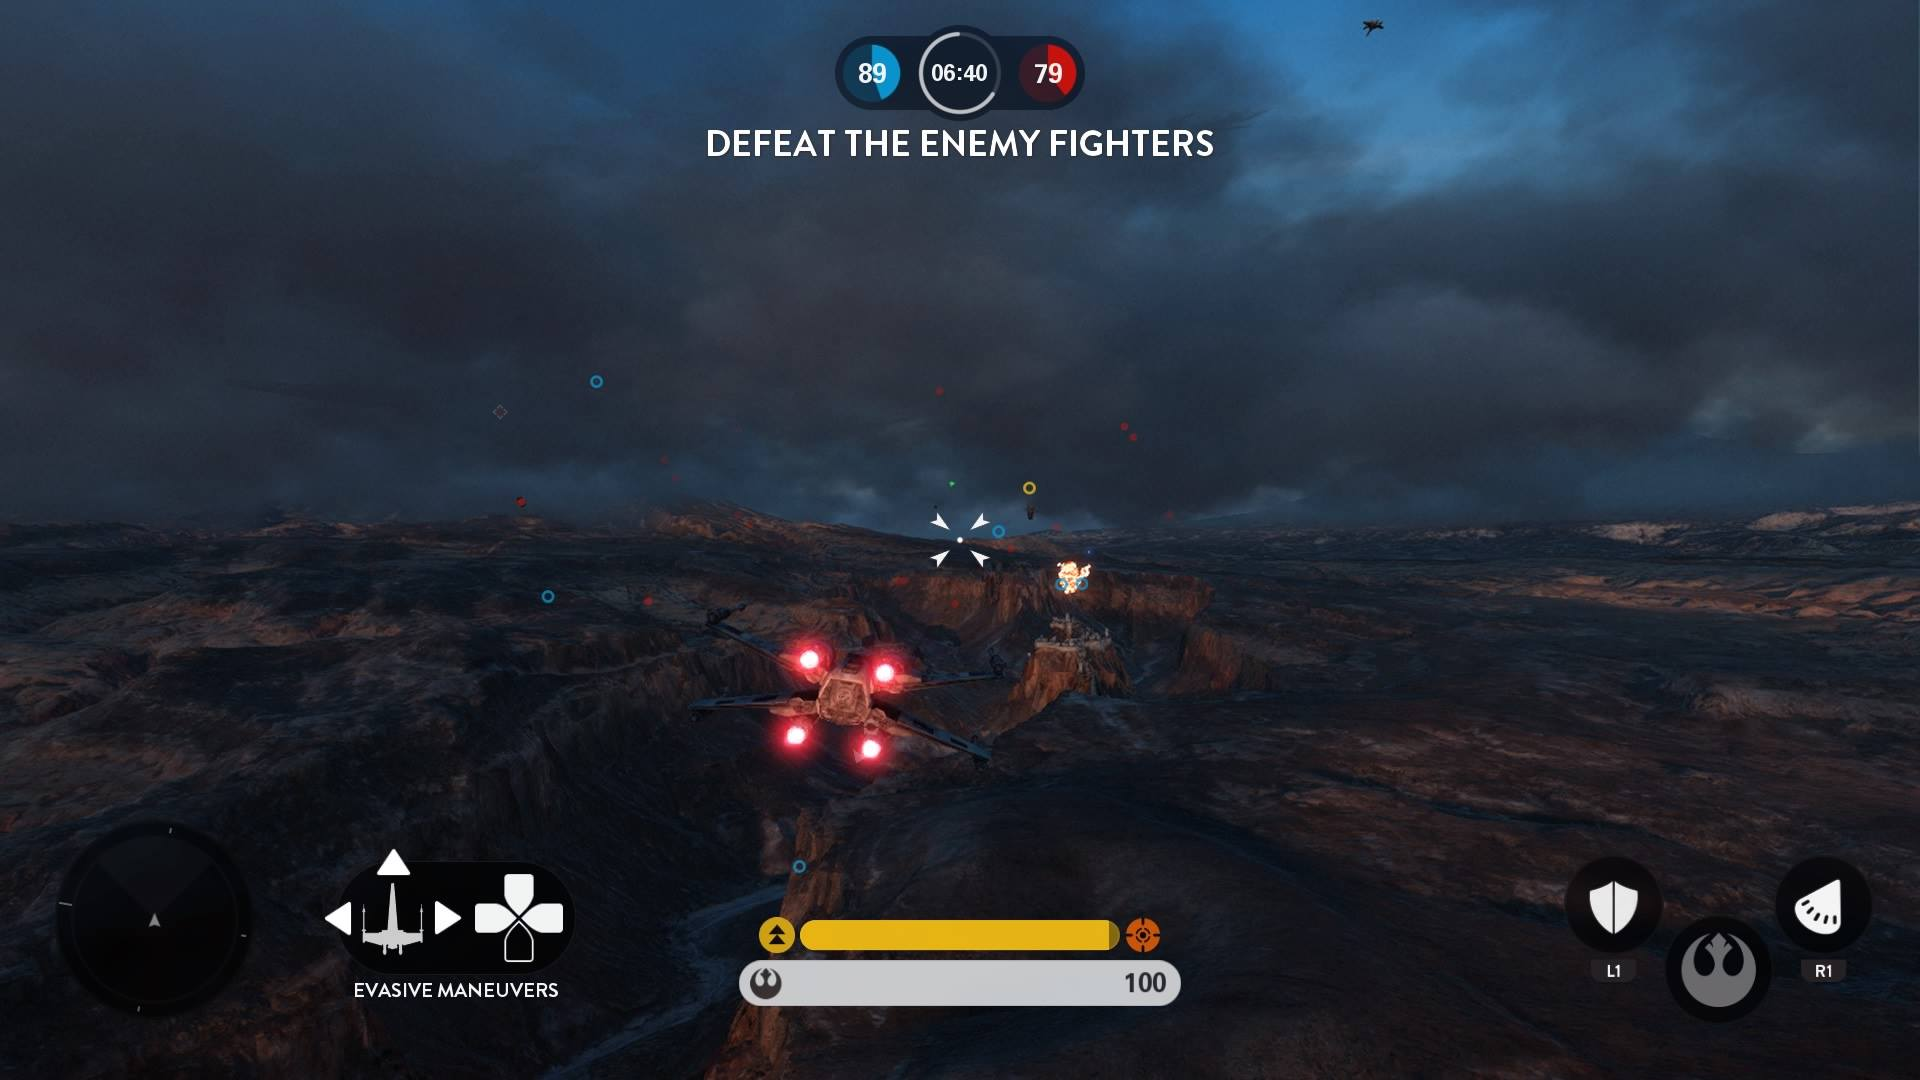 Pilot an X-Wing in Star Wars: Battlefront!